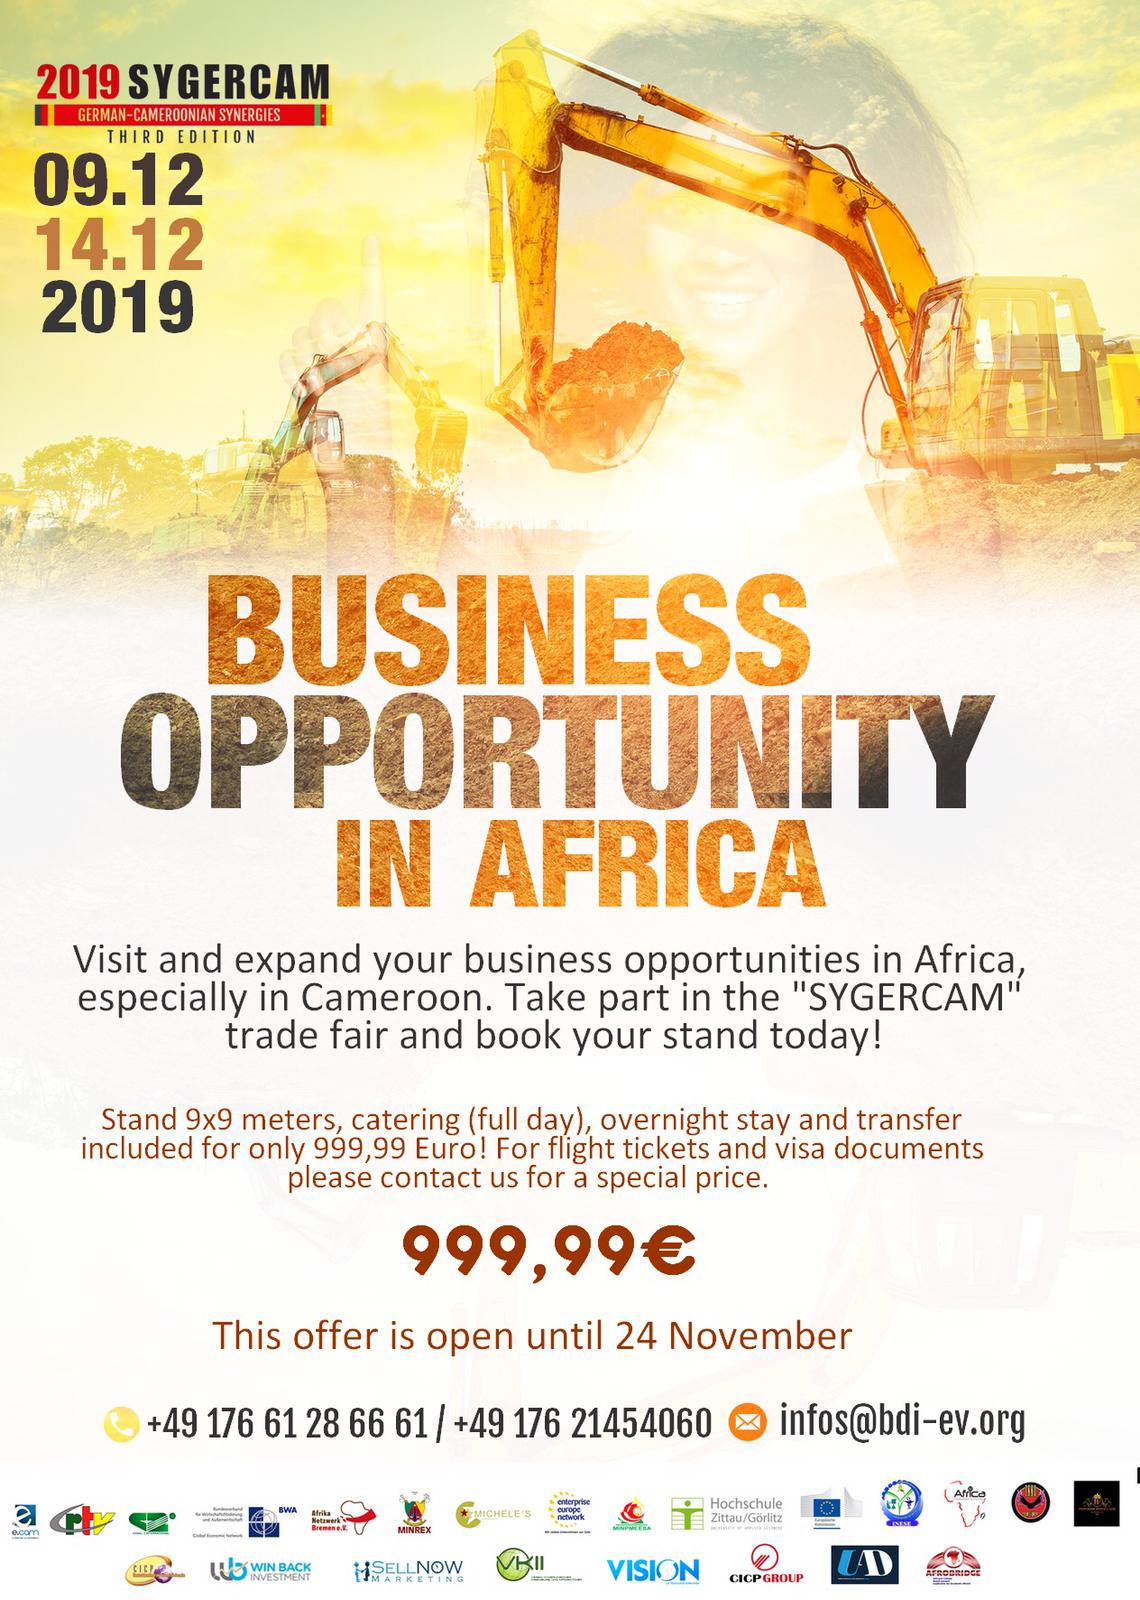 Business opportuinity in africa